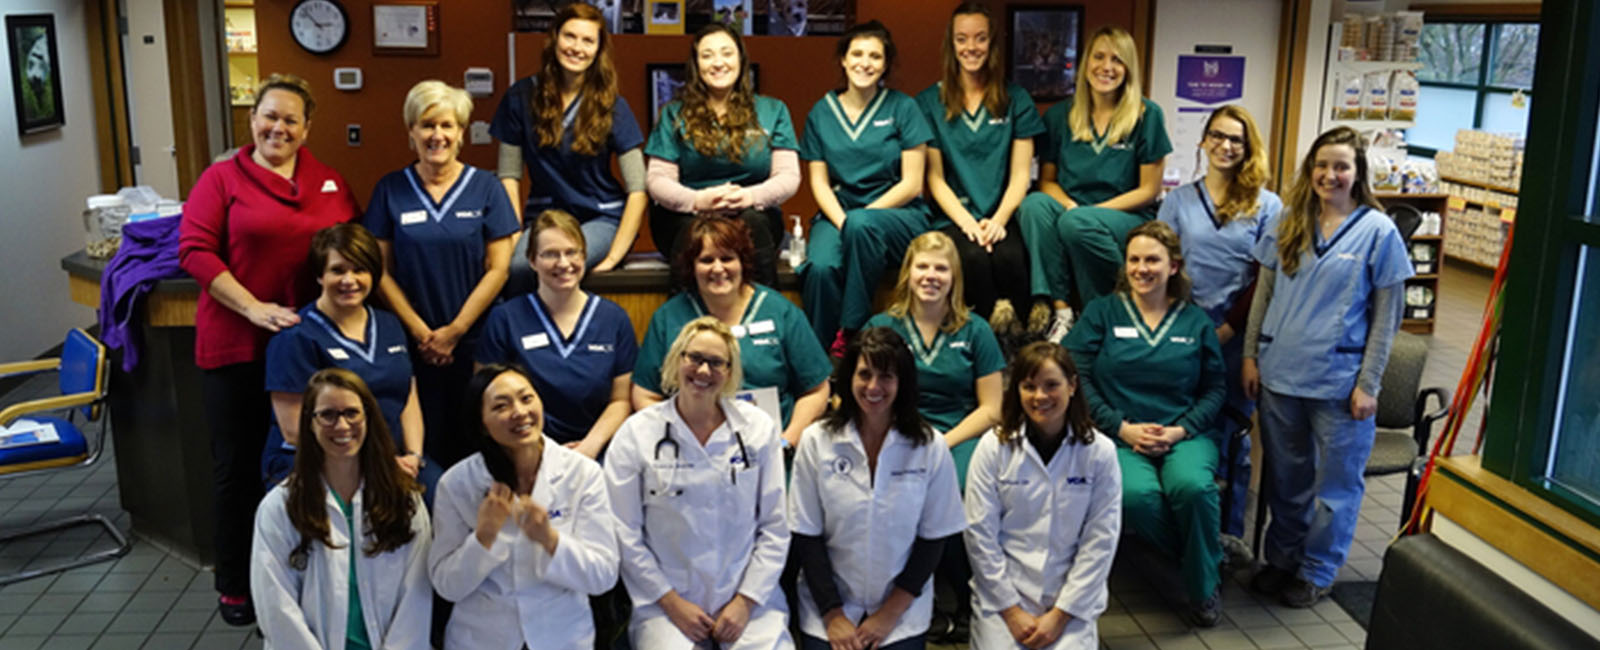 Homepage Team Picture of VCA Redmond Animal Hospital